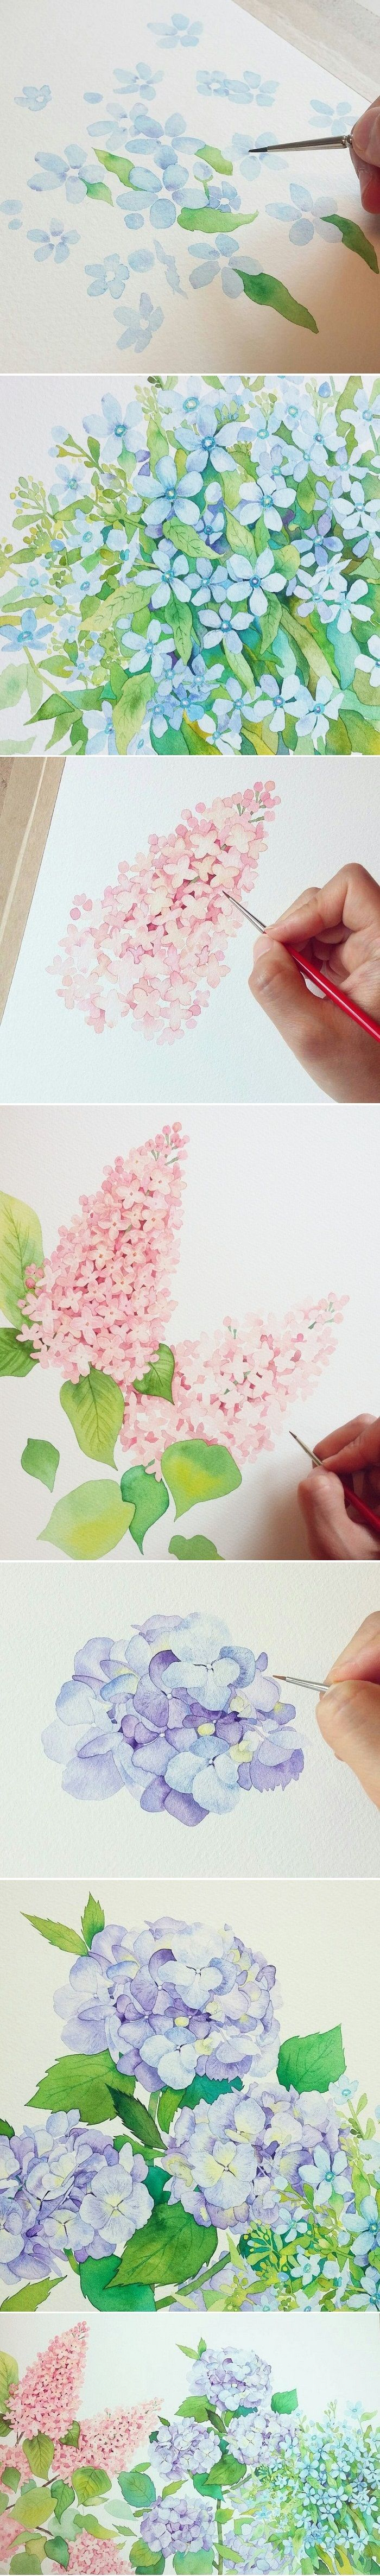 Pretty blue flower painting, pink flowers. This looks so easy!